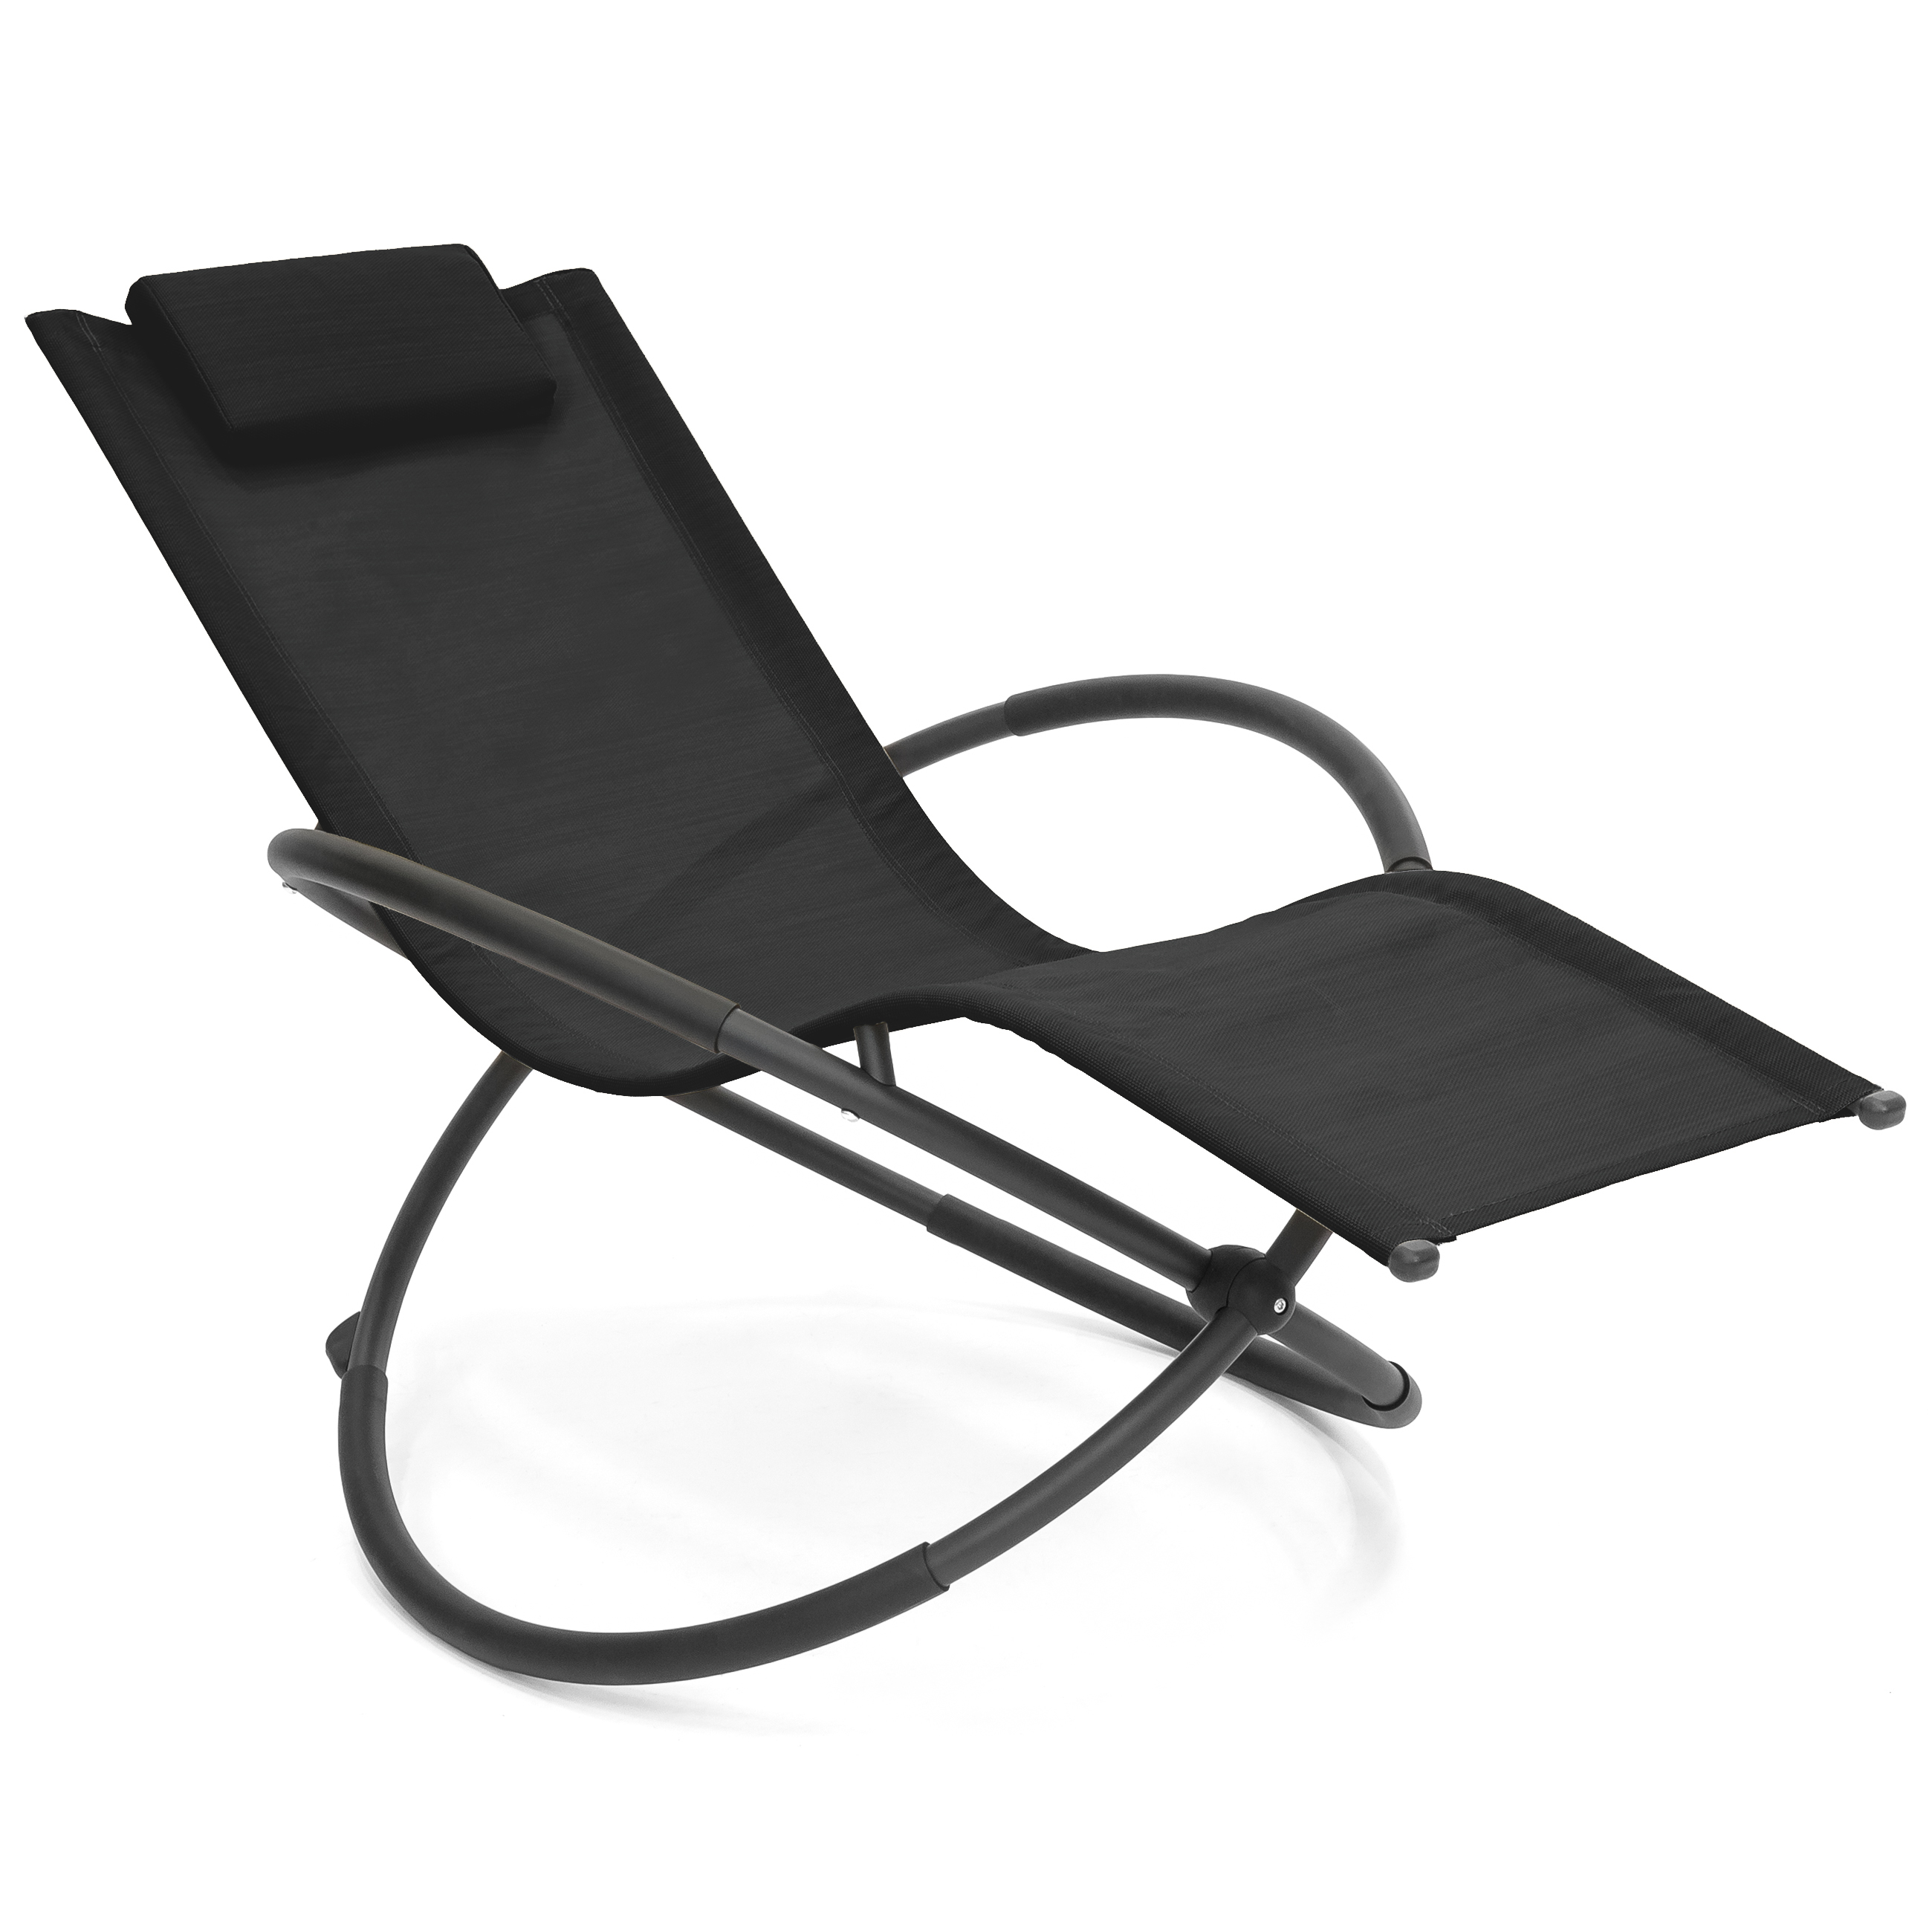 Best Choice Products Folding Orbital Zero Gravity Lounge Chair w  Removable Pillow (Black) by